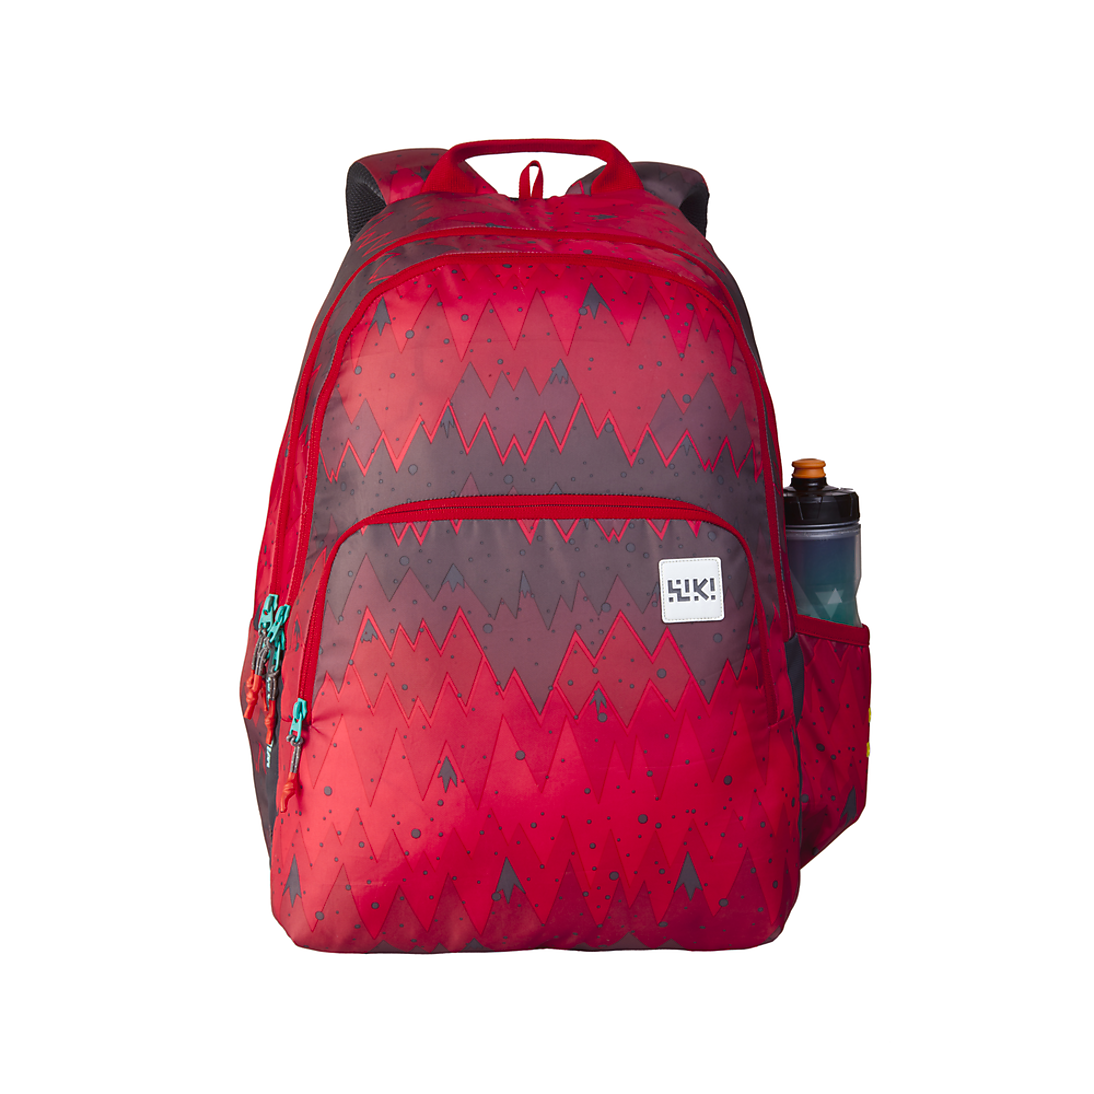 5090c7d50 Wildcraft Unisex Black And Red Backpack   The Shred Centre